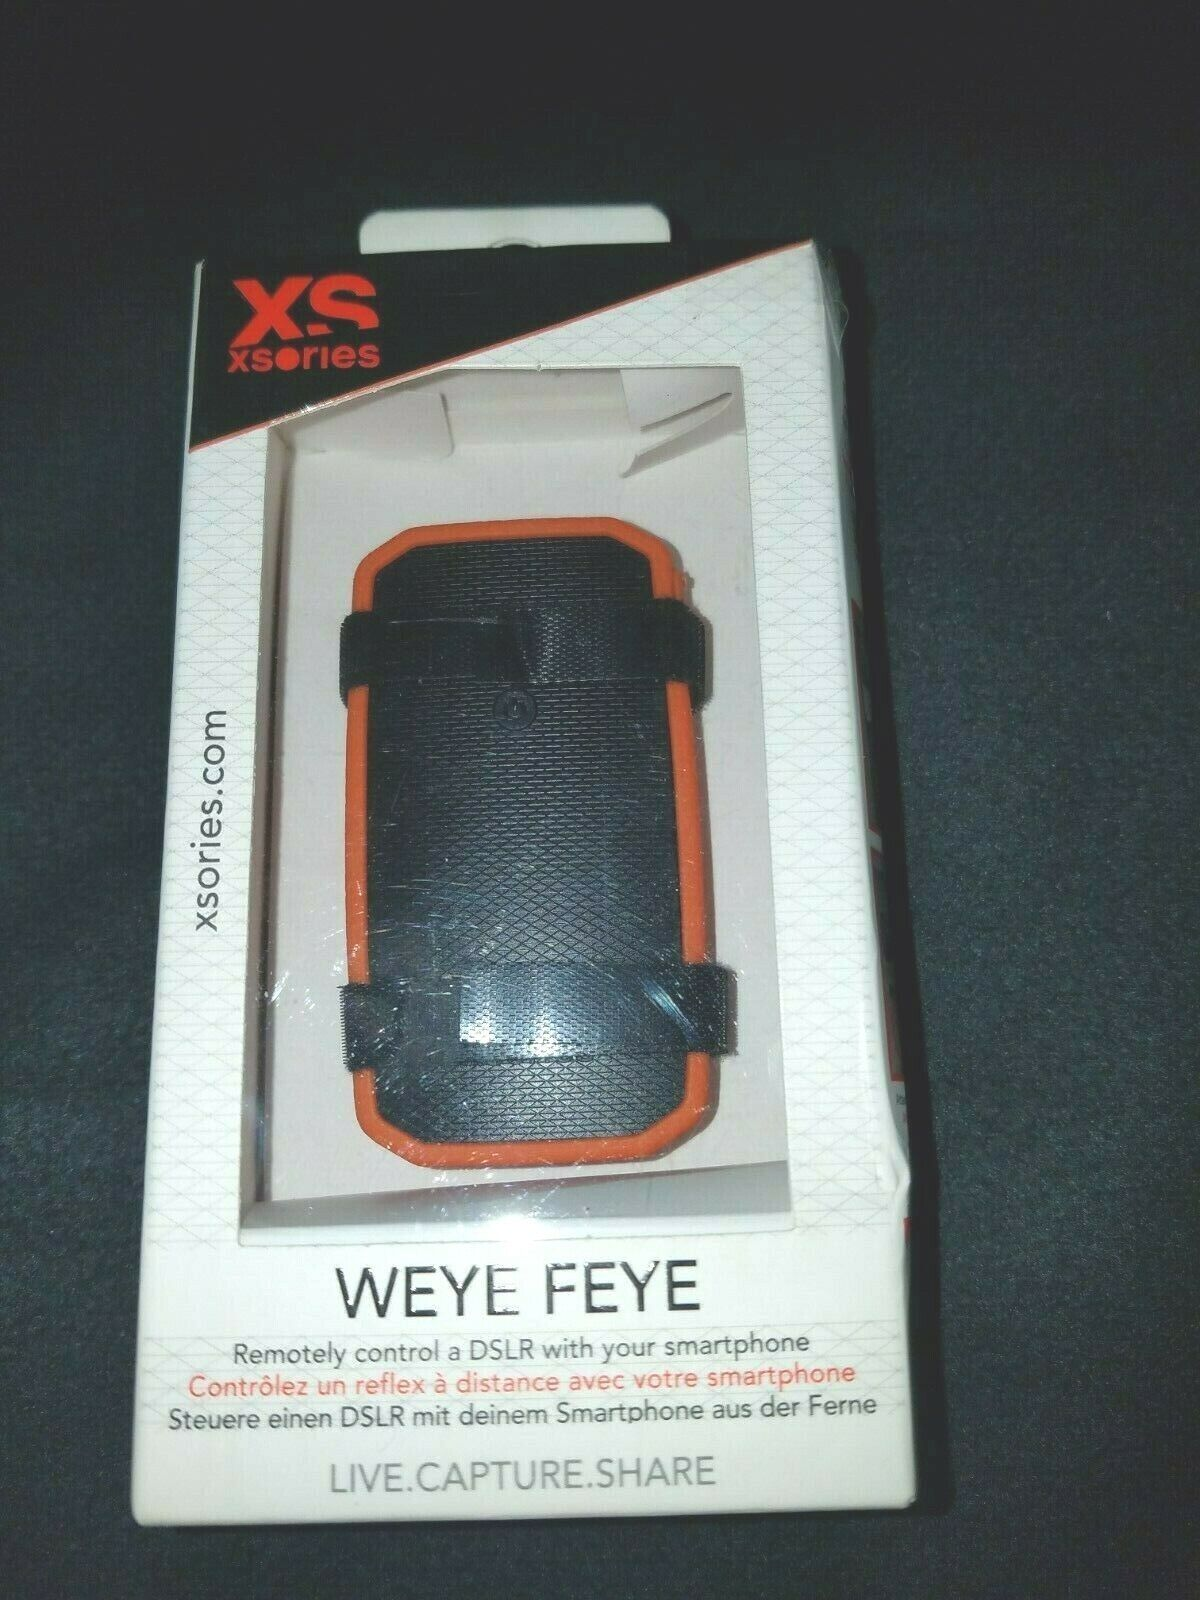 Xsories Weye Feye Wireless And Remote Control Of A DSLR Camera-New In Sealed Box - $39.00